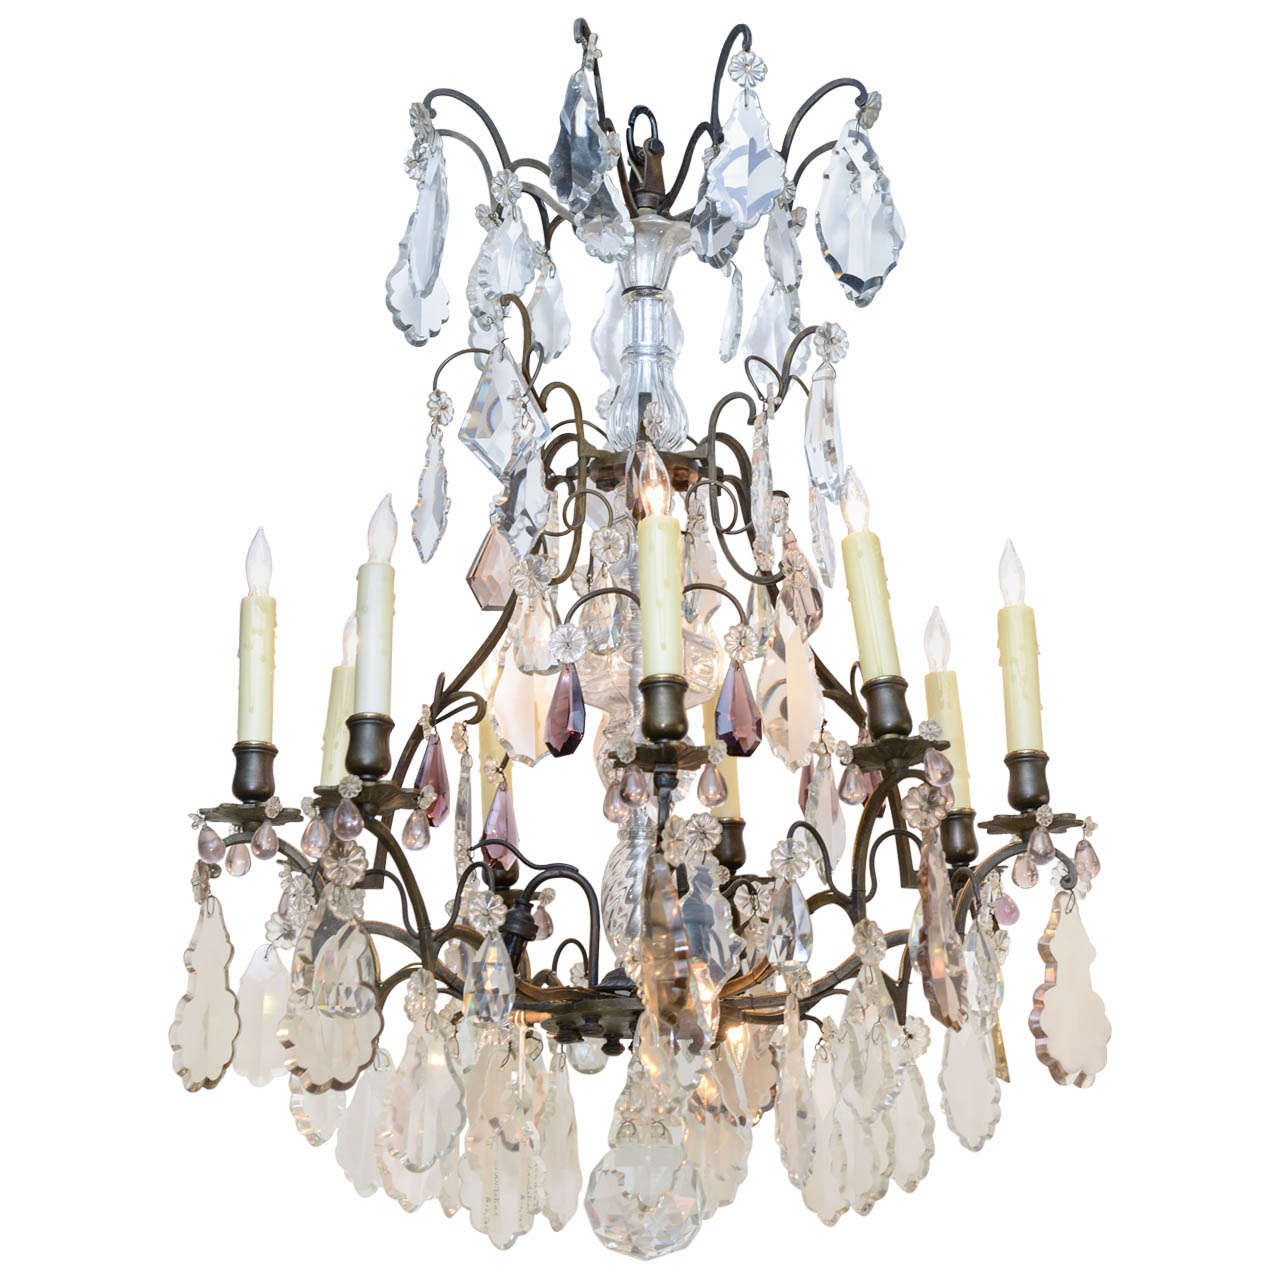 19th century baccarat crystal chandelier for sale at 1stdibs 19th century baccarat crystal chandelier for sale aloadofball Choice Image